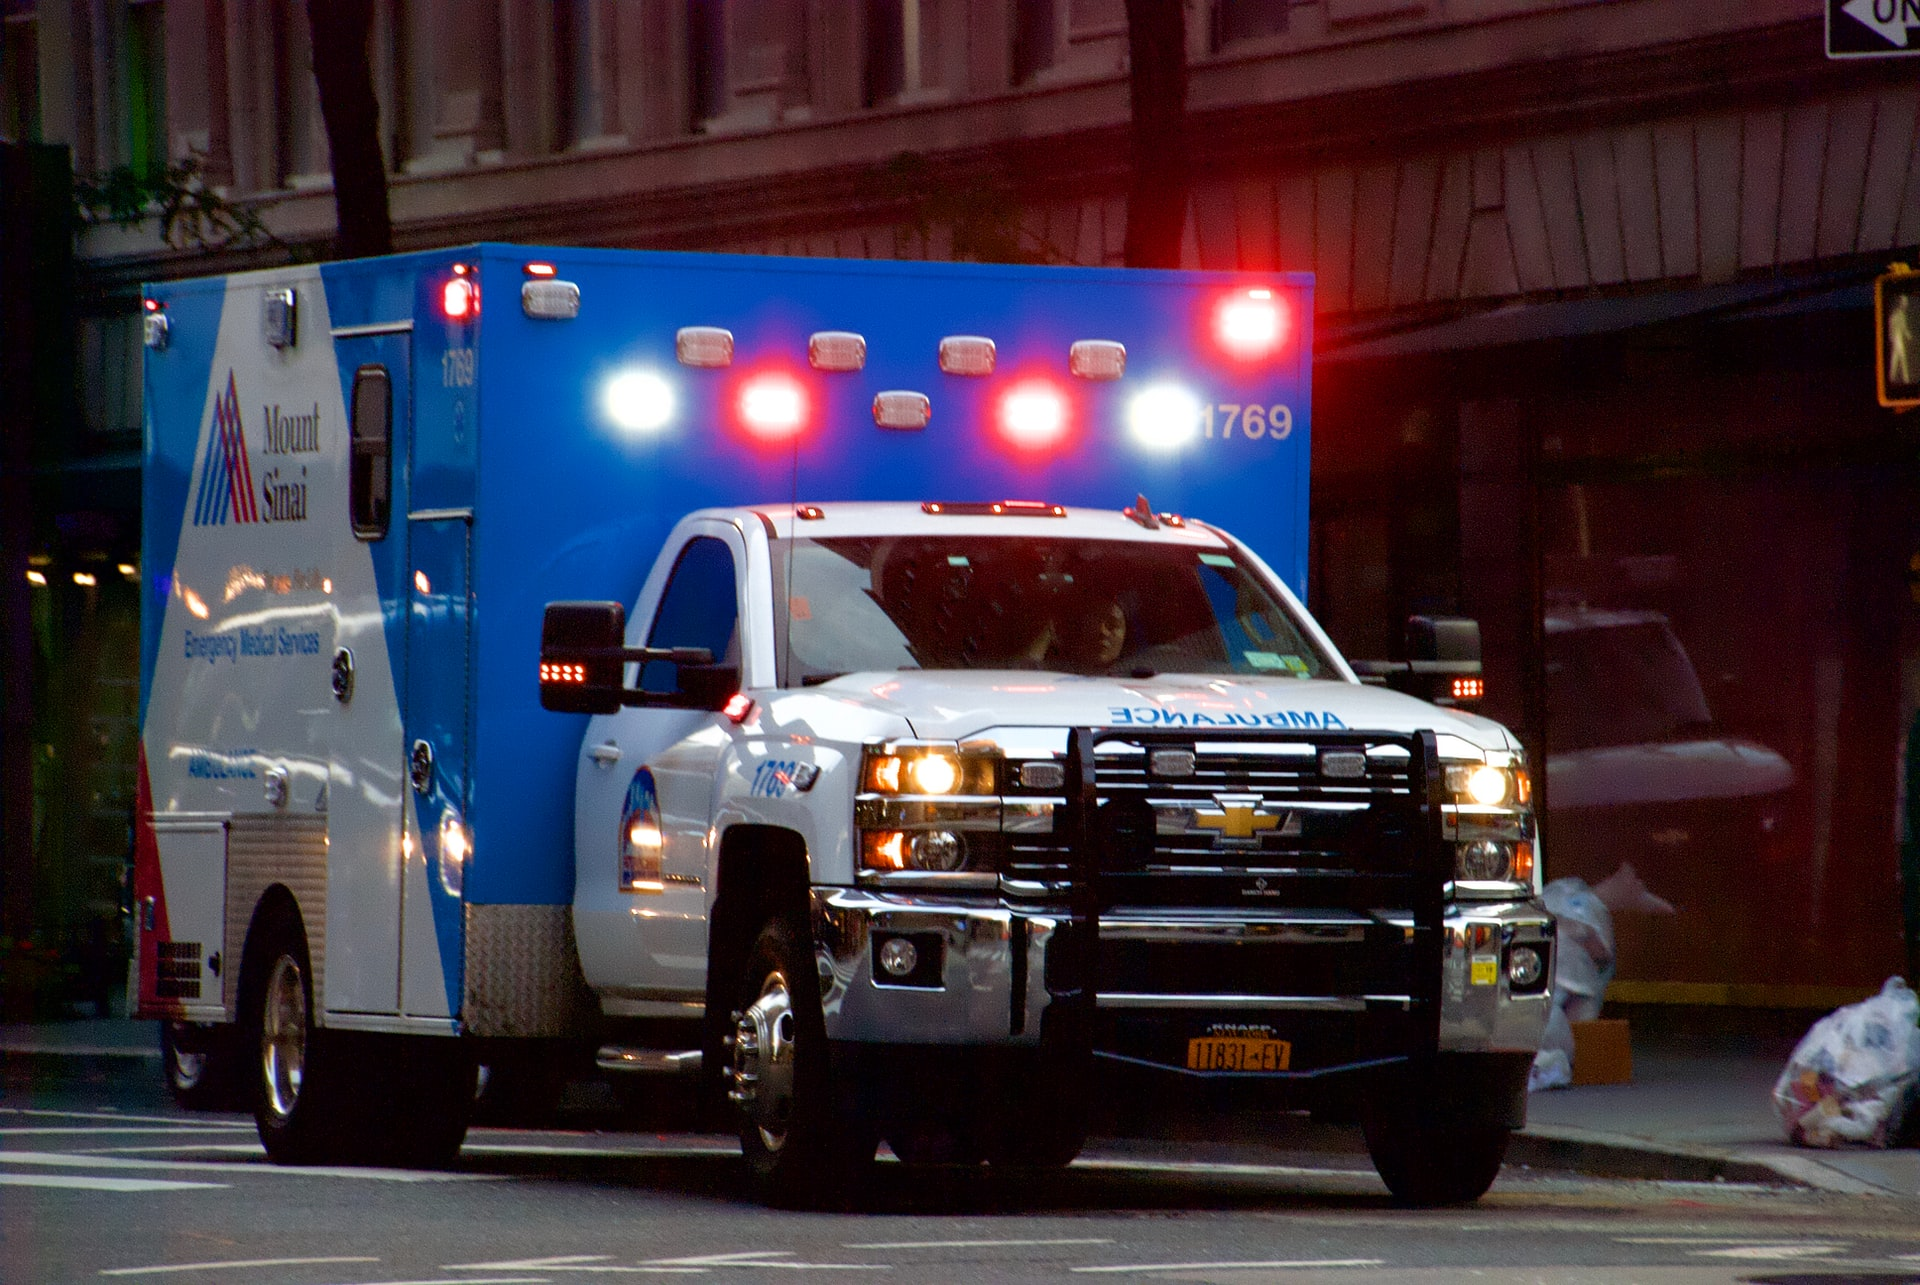 Photo of ambulance with its emergency lights on